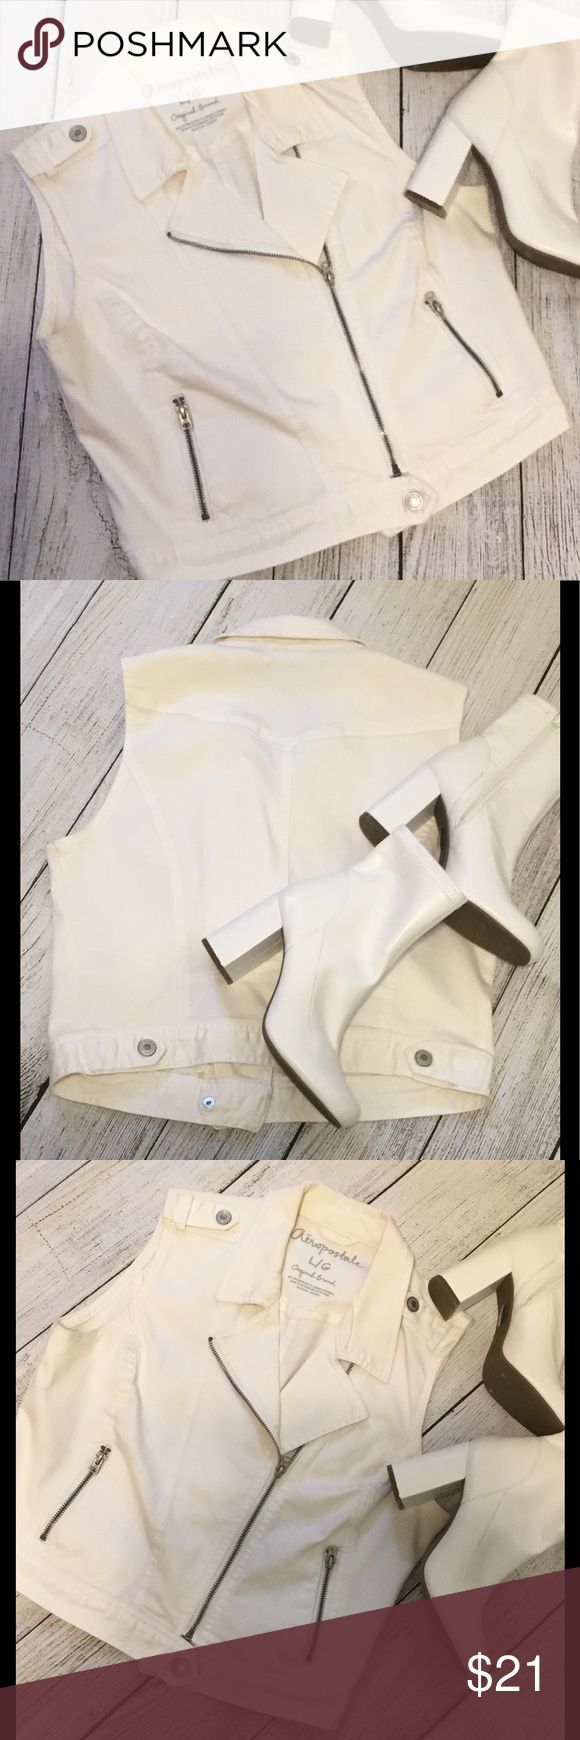 The Rock Star in You White Jean Vest with a Zipper front and 2 zipper pockets. Adjustable buttons at the bottom. Aeropostale Jackets & Coats Vests